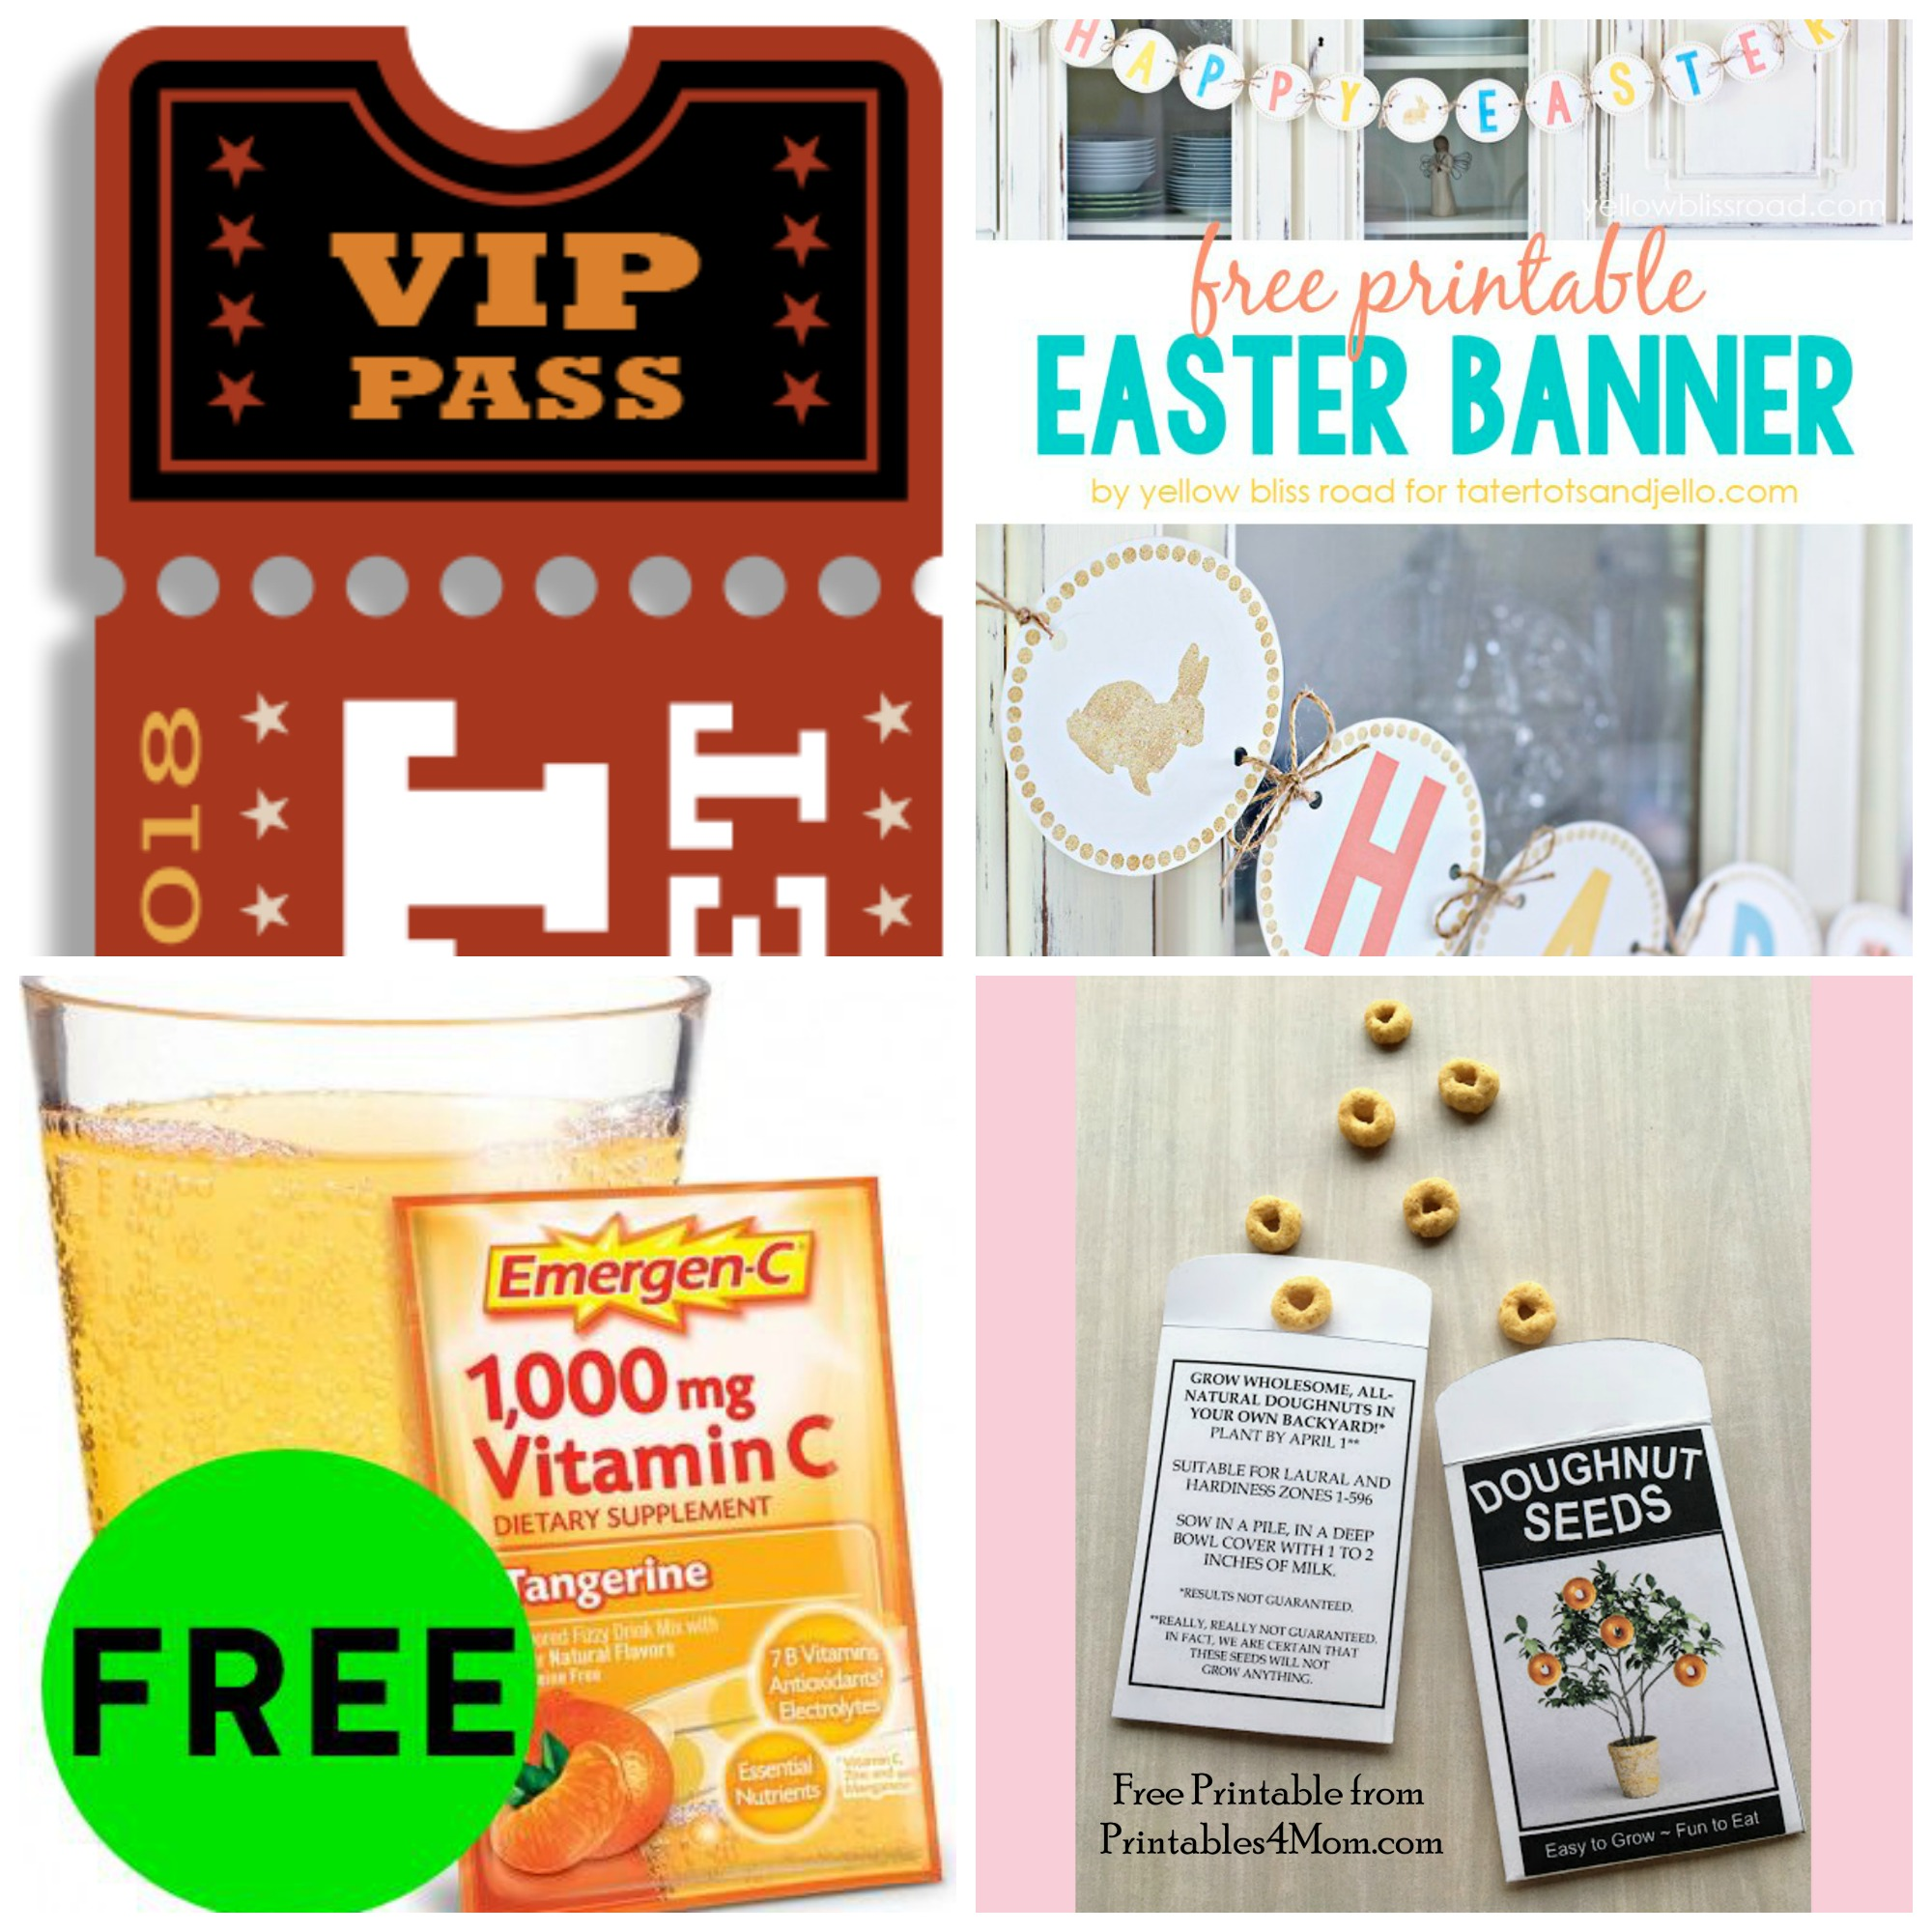 Did You See These FOUR (4!) FREEbies: Send Your Name the the Sun, Easter Banner, Emergen-C Packets and Donut Seeds Printable Packet!